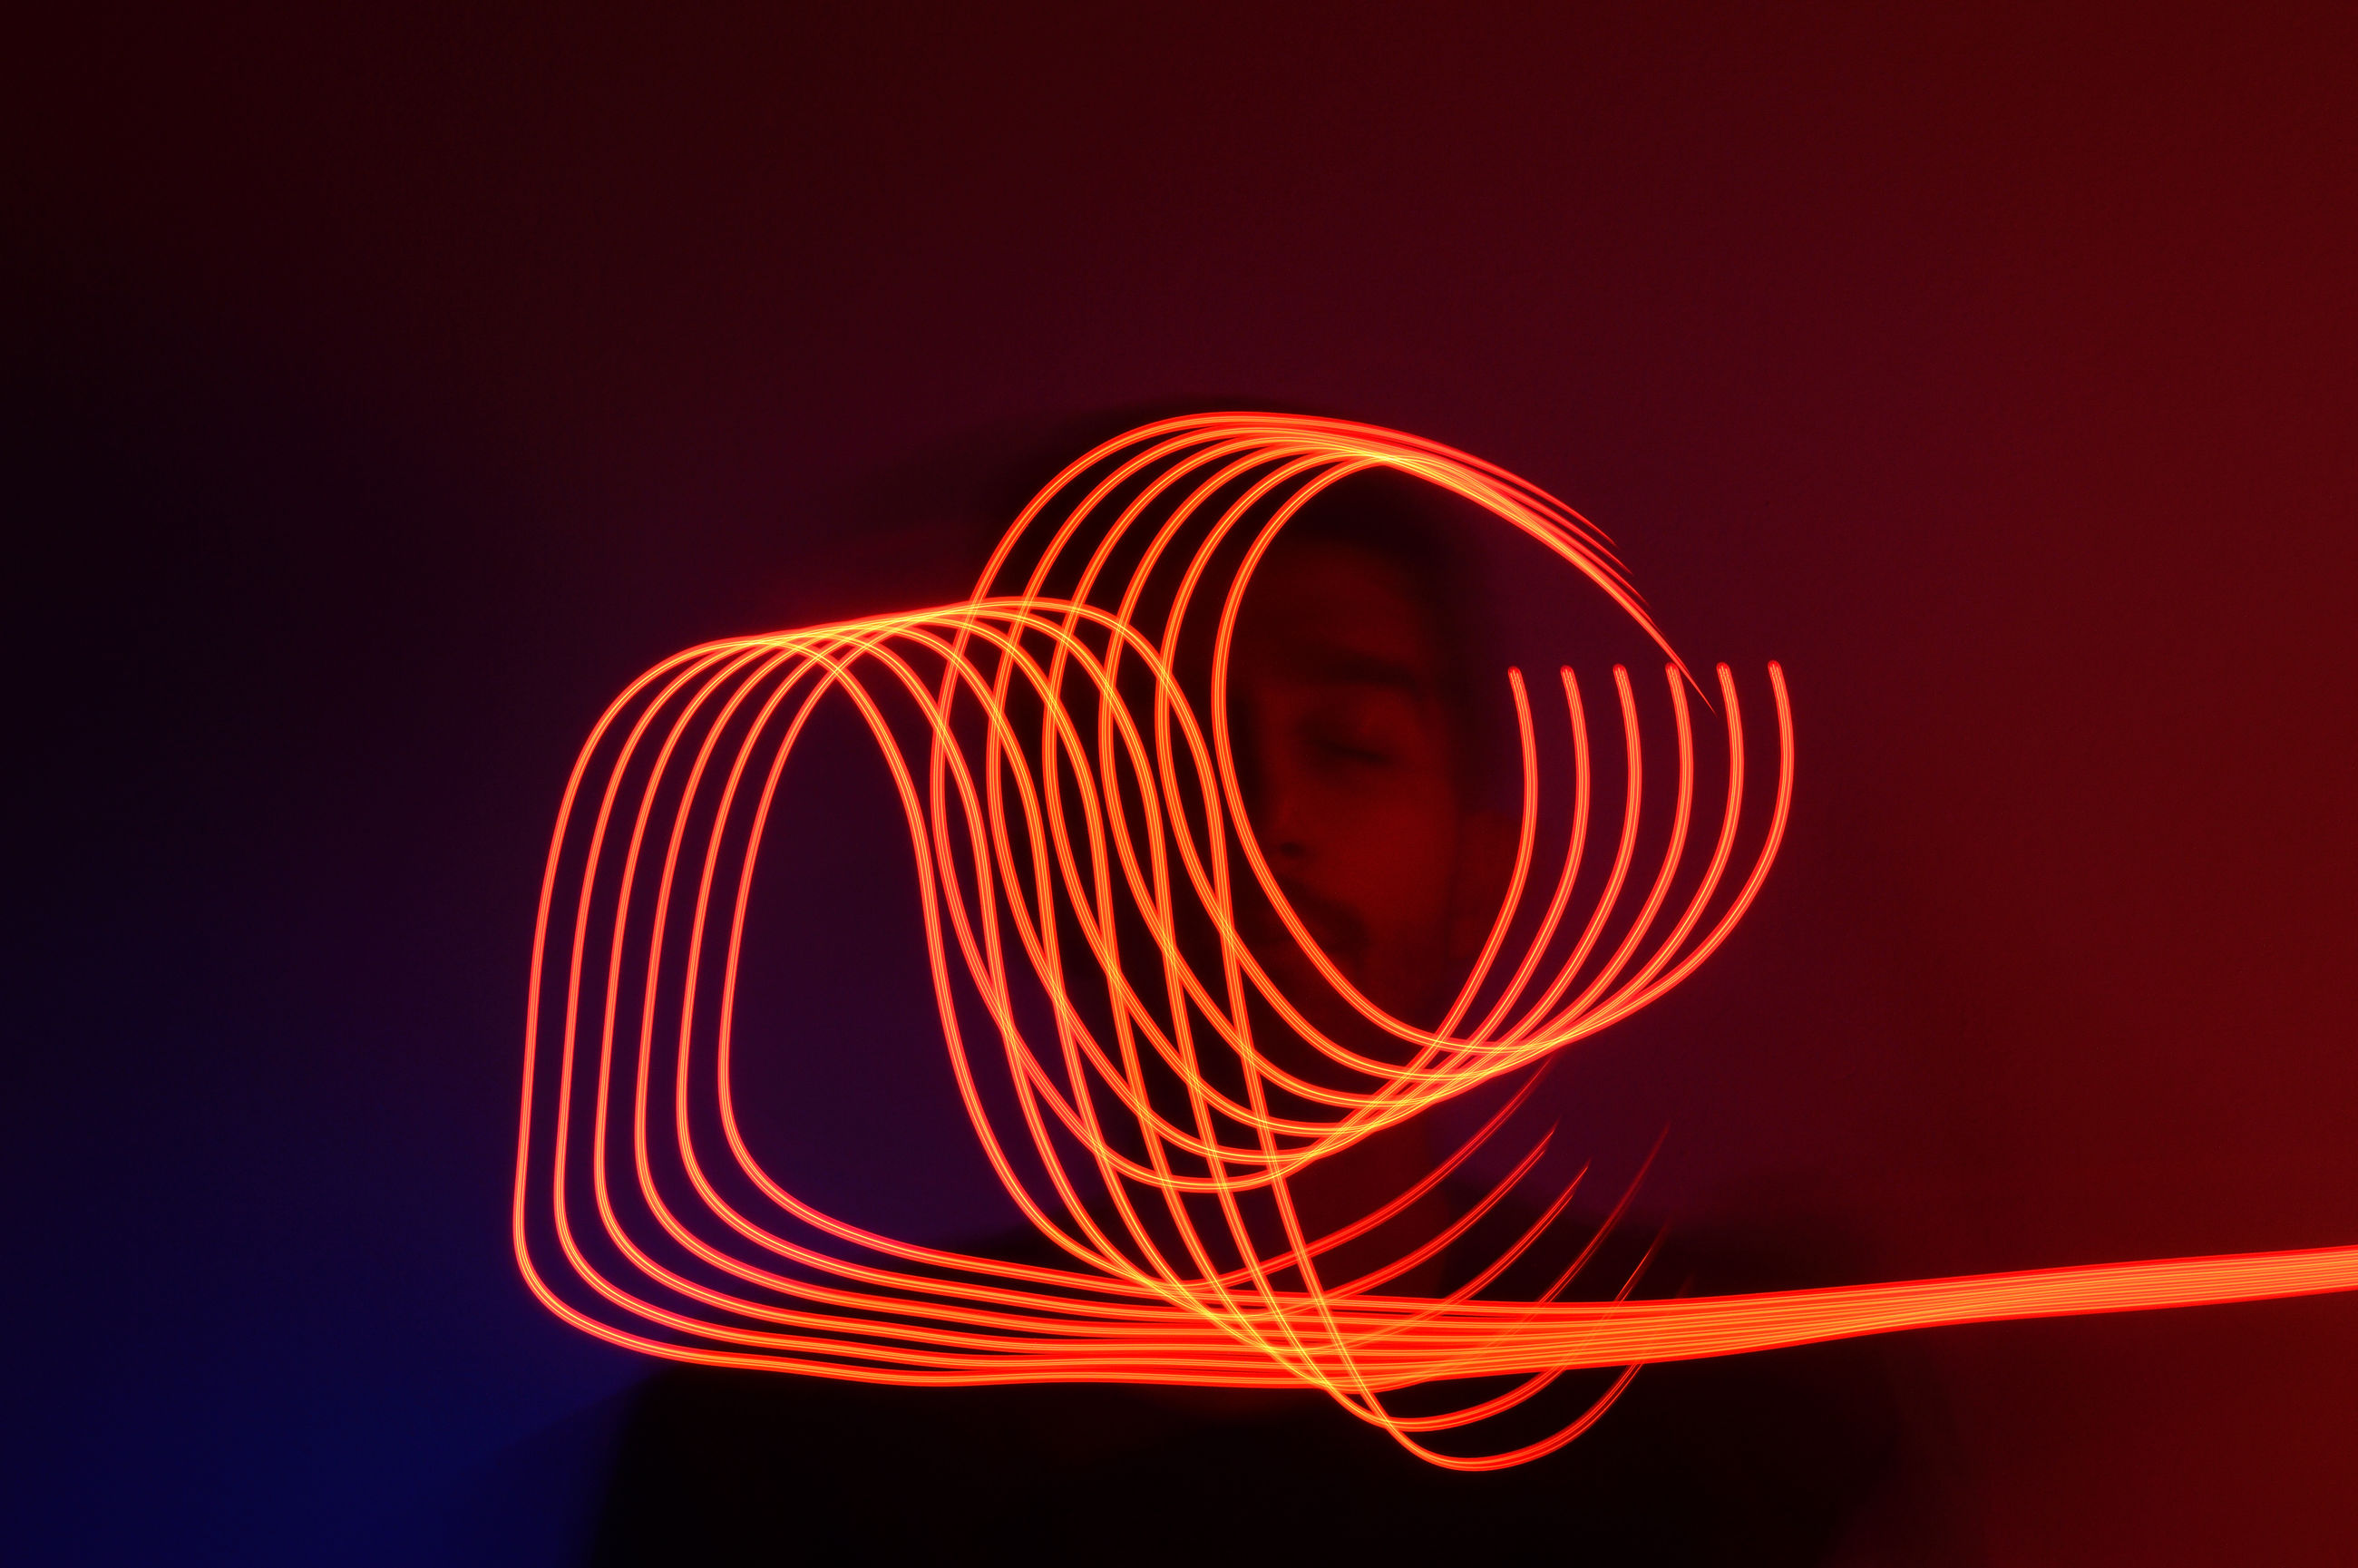 long exposure, light painting, illuminated, motion, pattern, glowing, blurred motion, night, light trail, red, orange color, no people, studio shot, creativity, spiral, indoors, copy space, abstract, close-up, light - natural phenomenon, wire wool